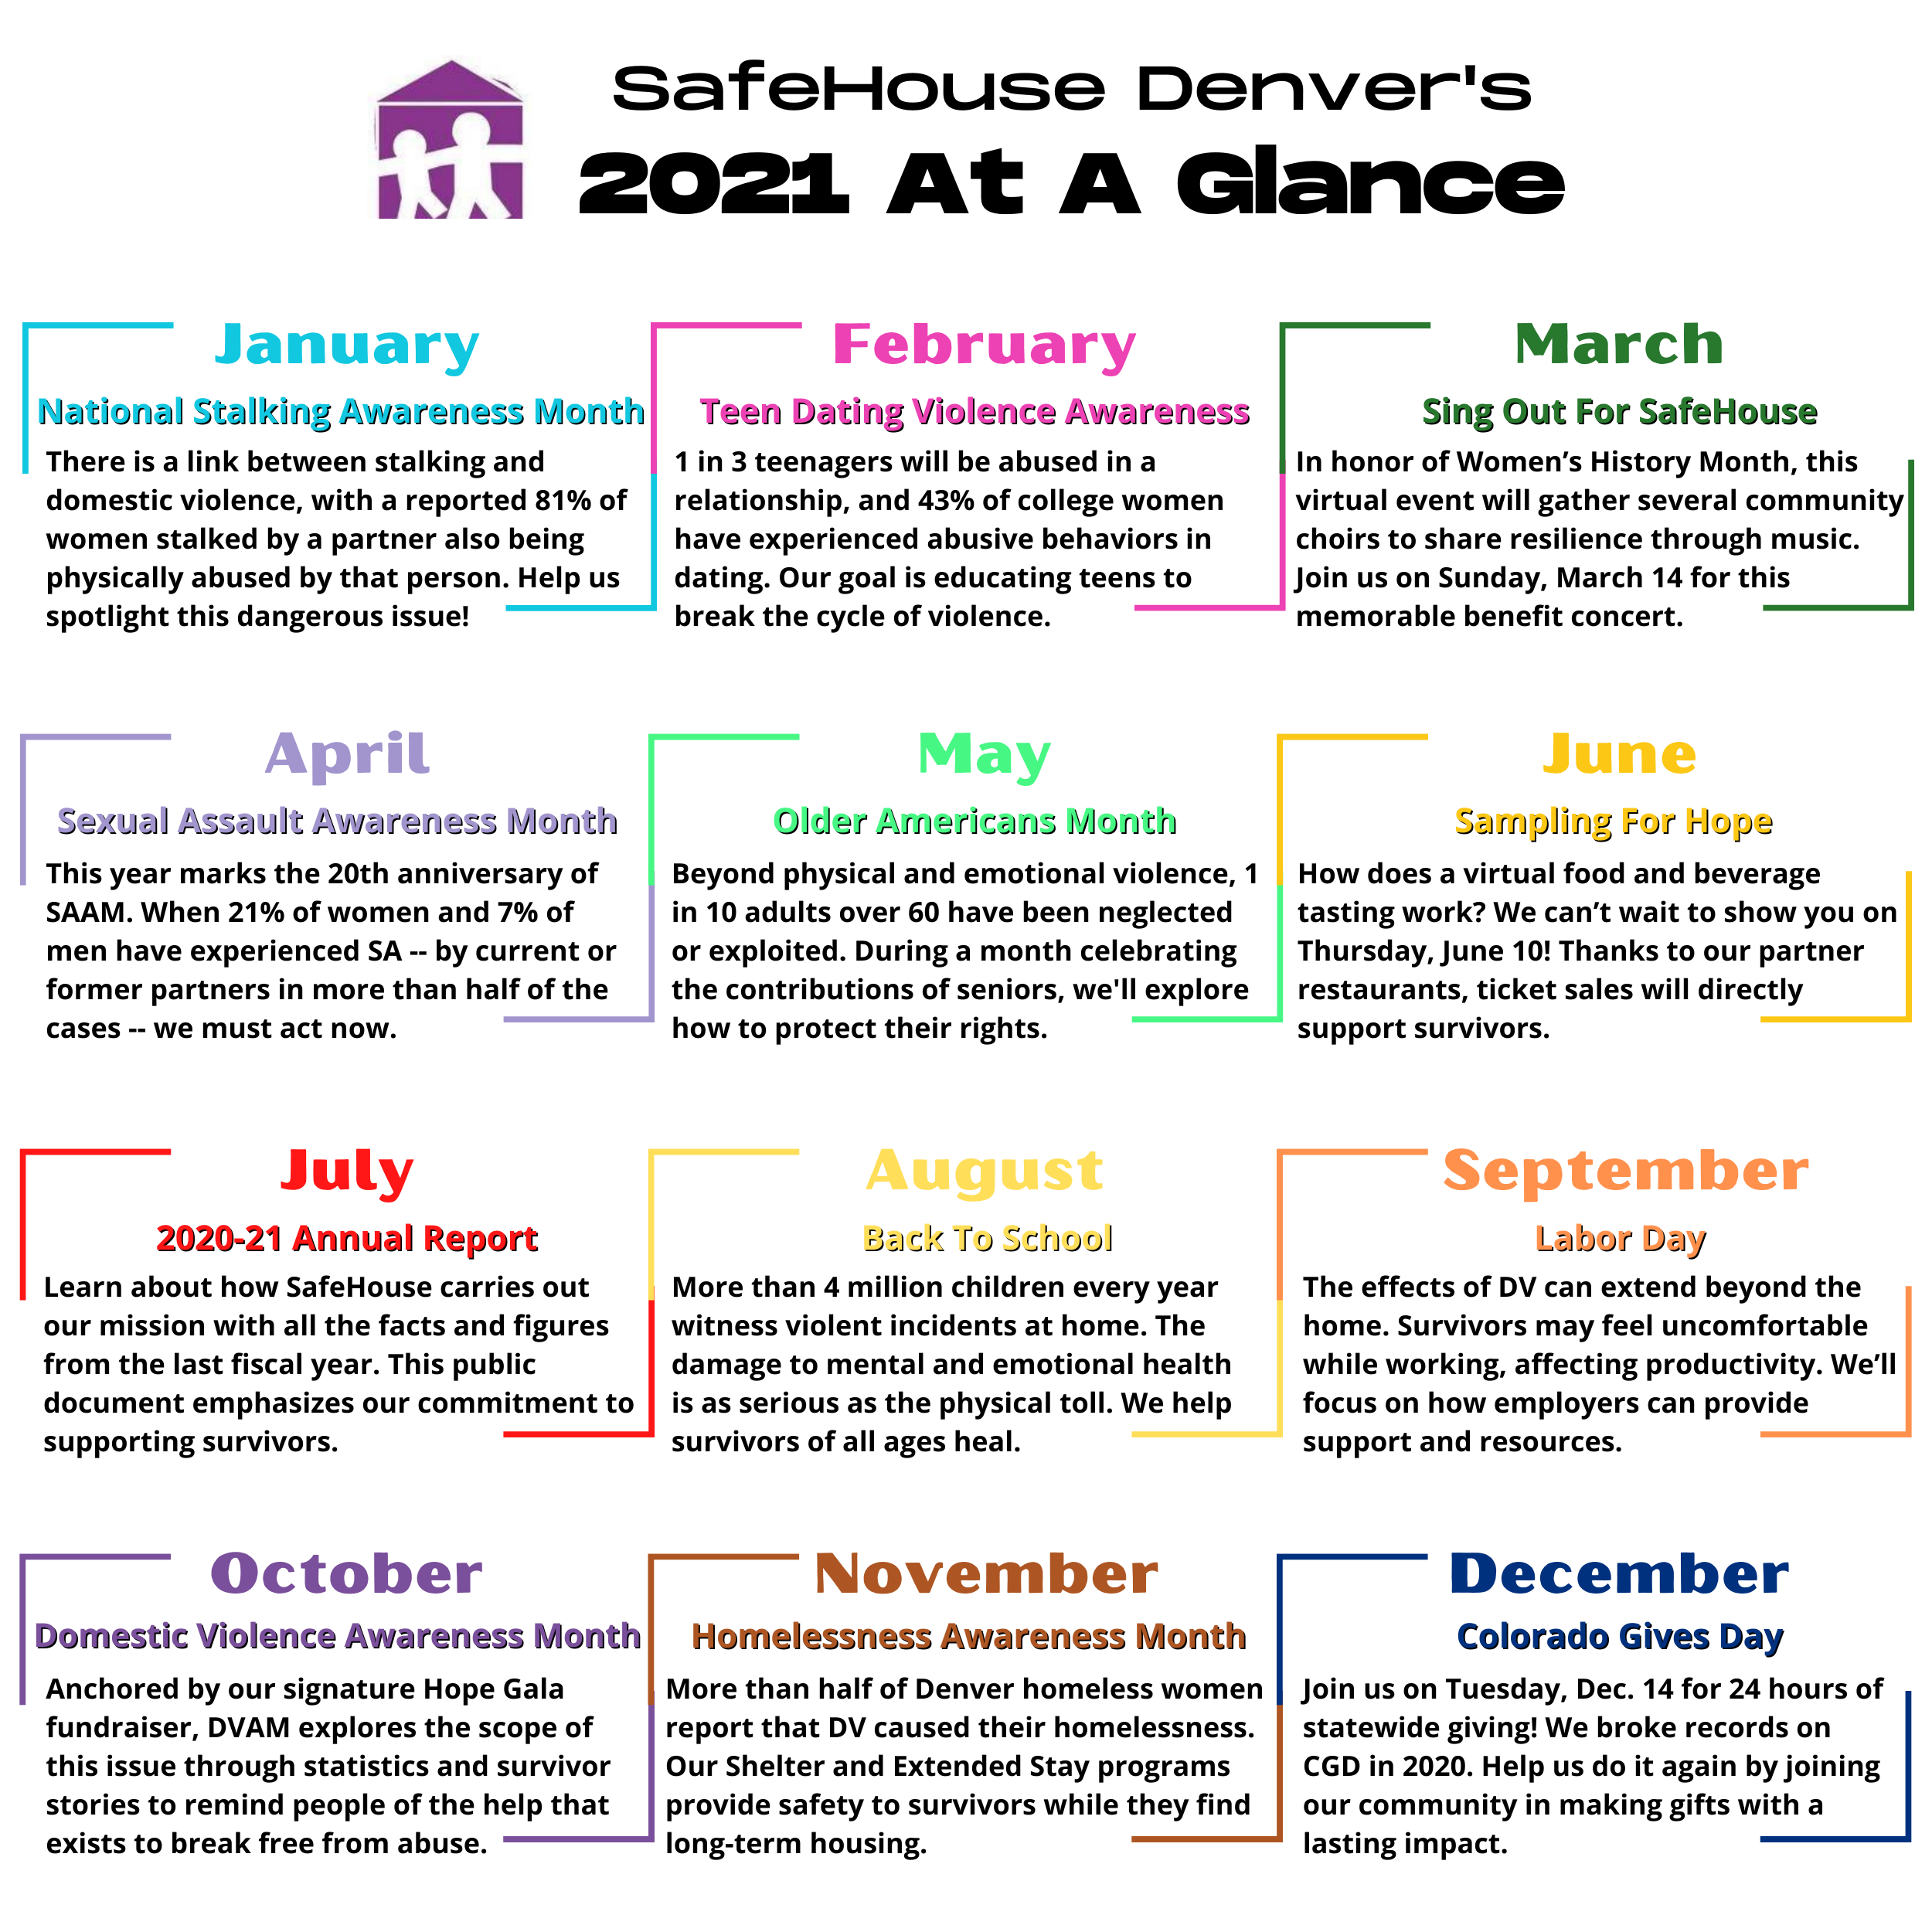 Your Monthly Guide To 2021 At SafeHouse Denver